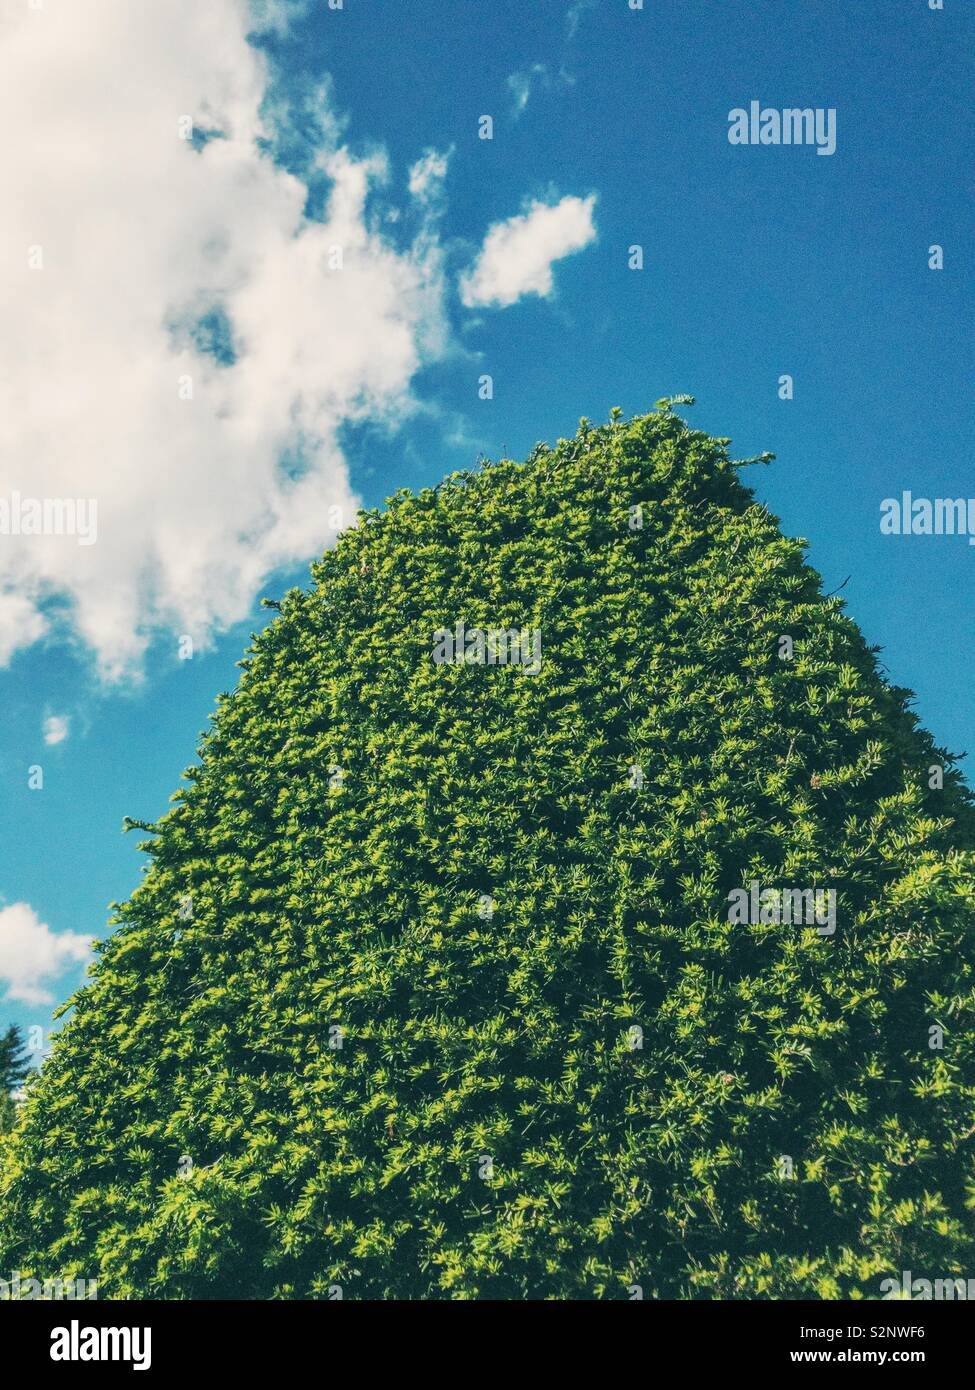 Side end of a large trimmed yew hedge against sky. - Stock Image